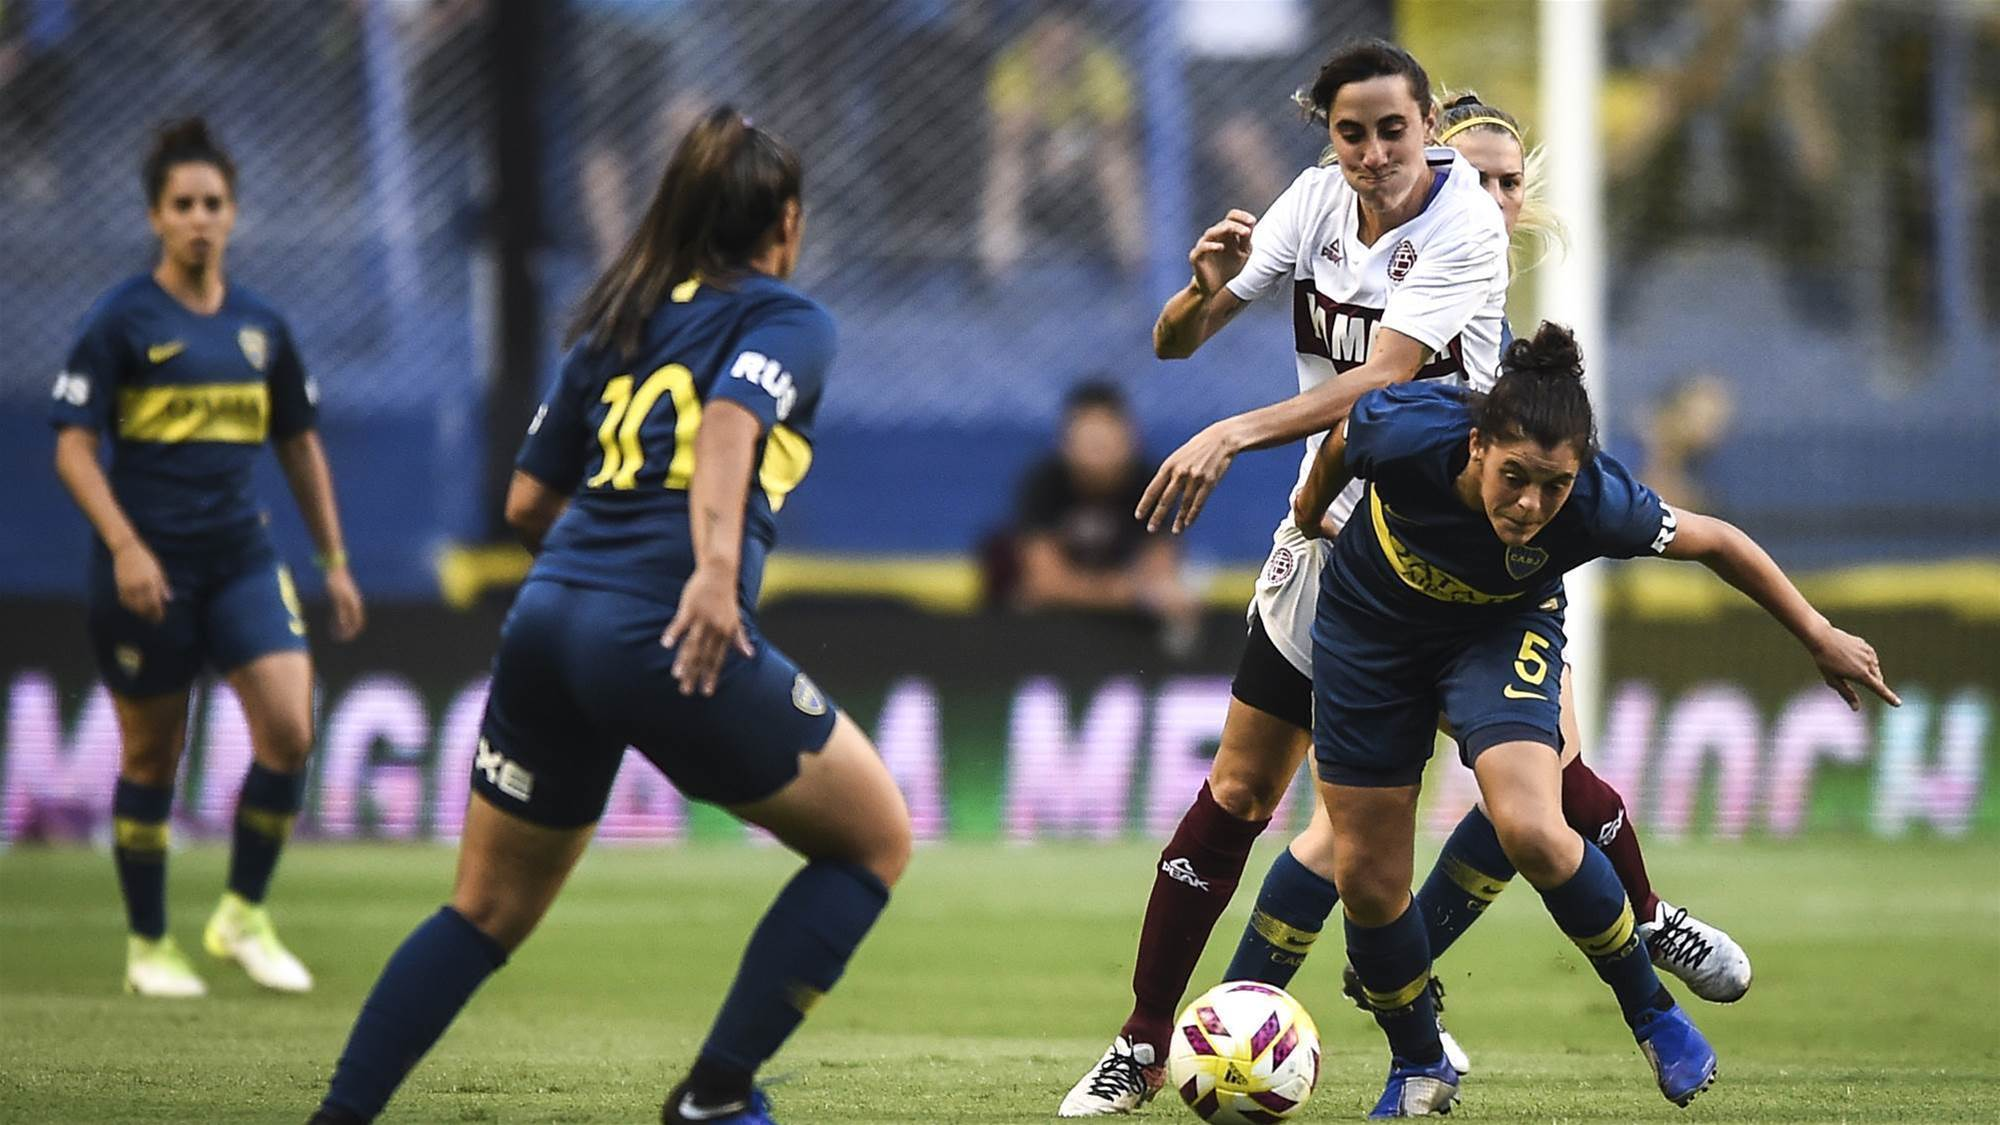 Women's football is professional in Argentina